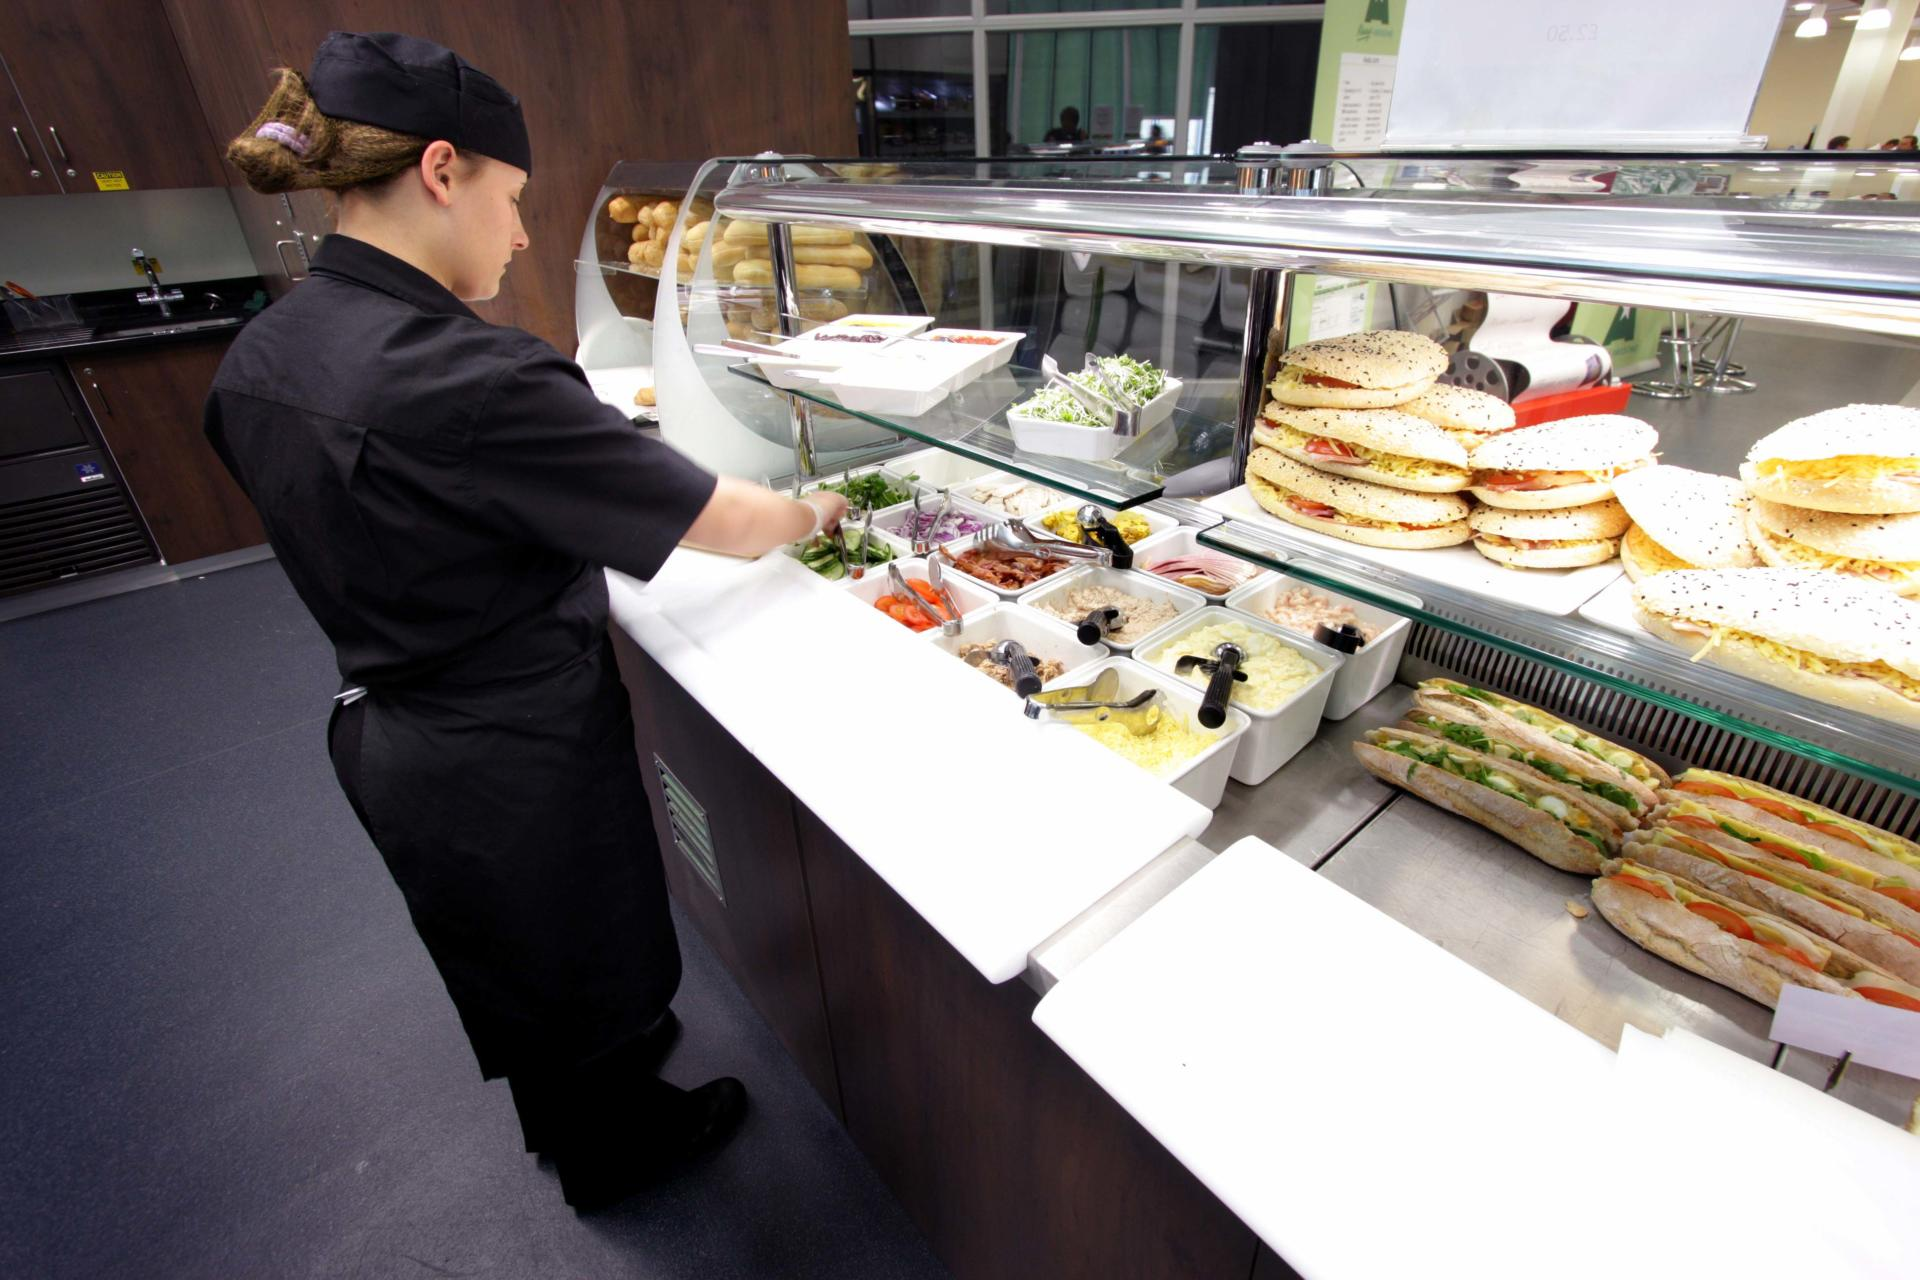 Mars-Sodexo-Slough-Staff-Severy-Front-of-house-Servery-Food-Display-spacecatering_8